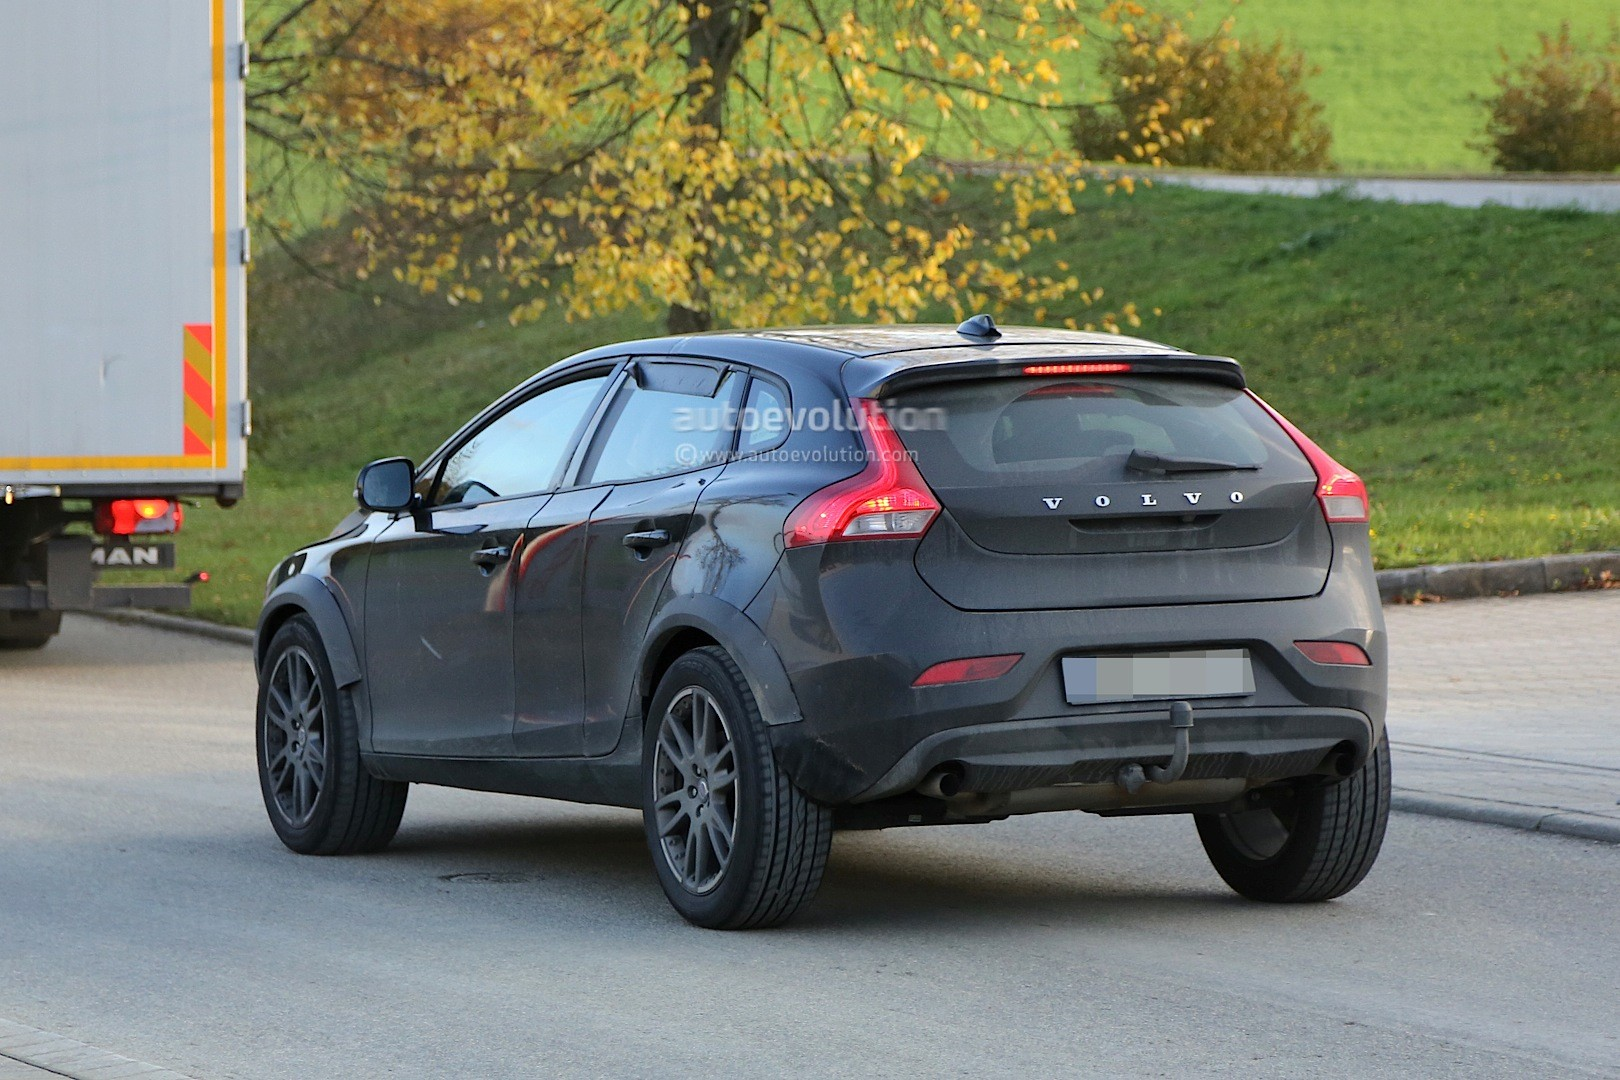 spyshots  volvo xc40 coming in 2018  will be built in belgium and compete with gla  x1